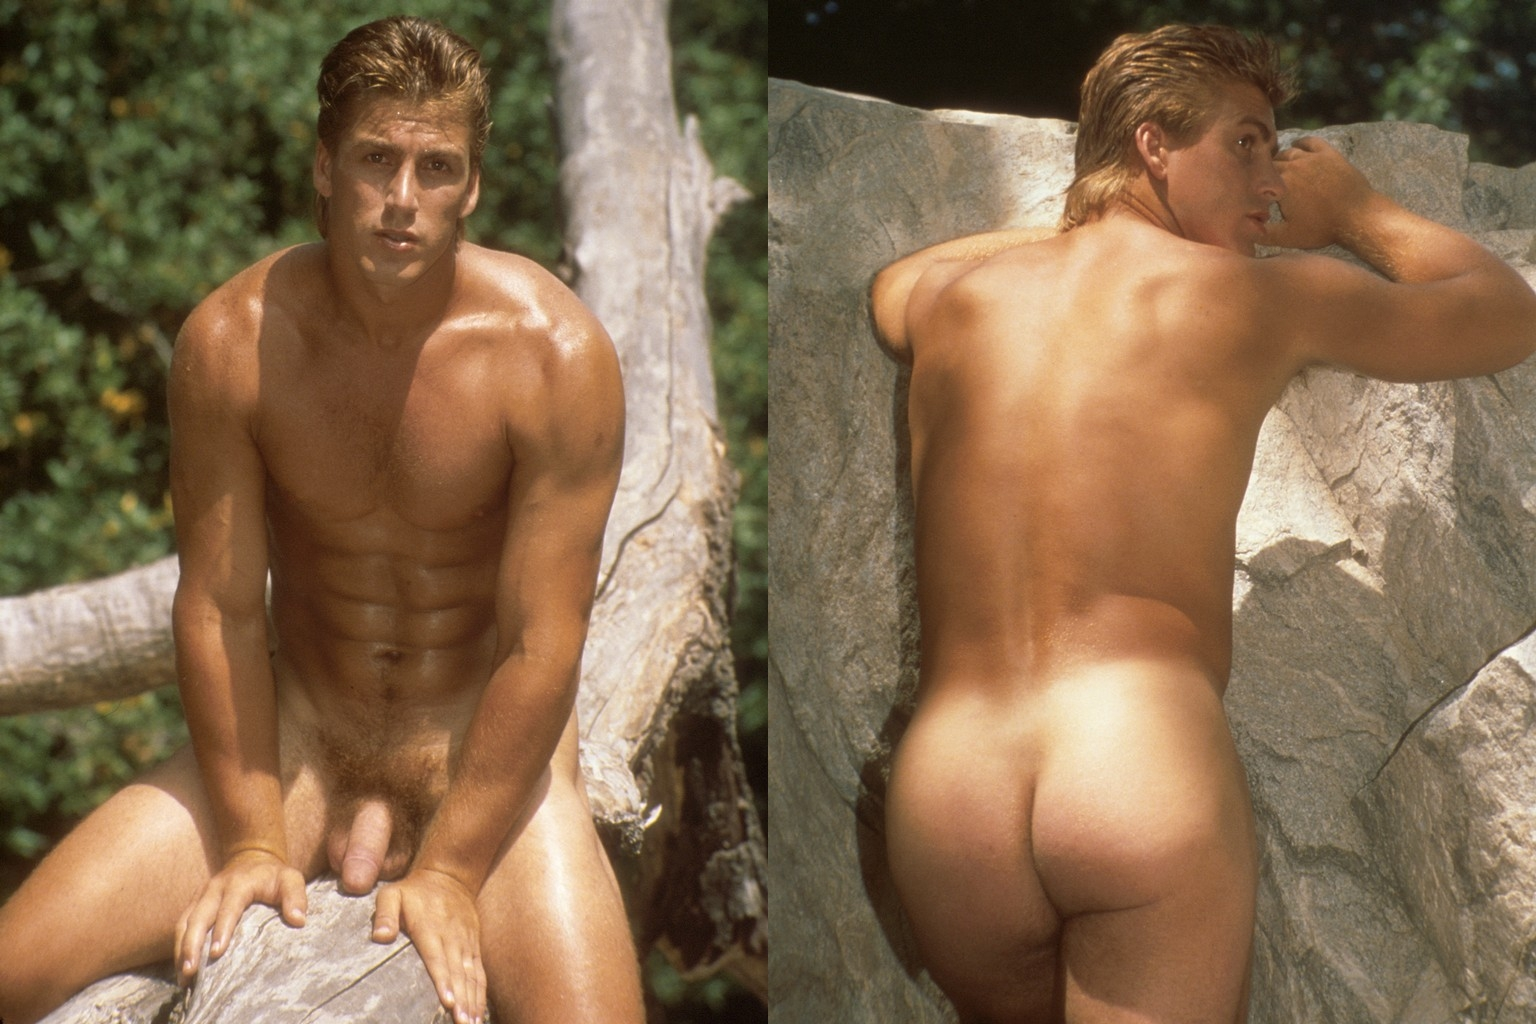 Andriy Shevchenko Naked time will tell: july 17th